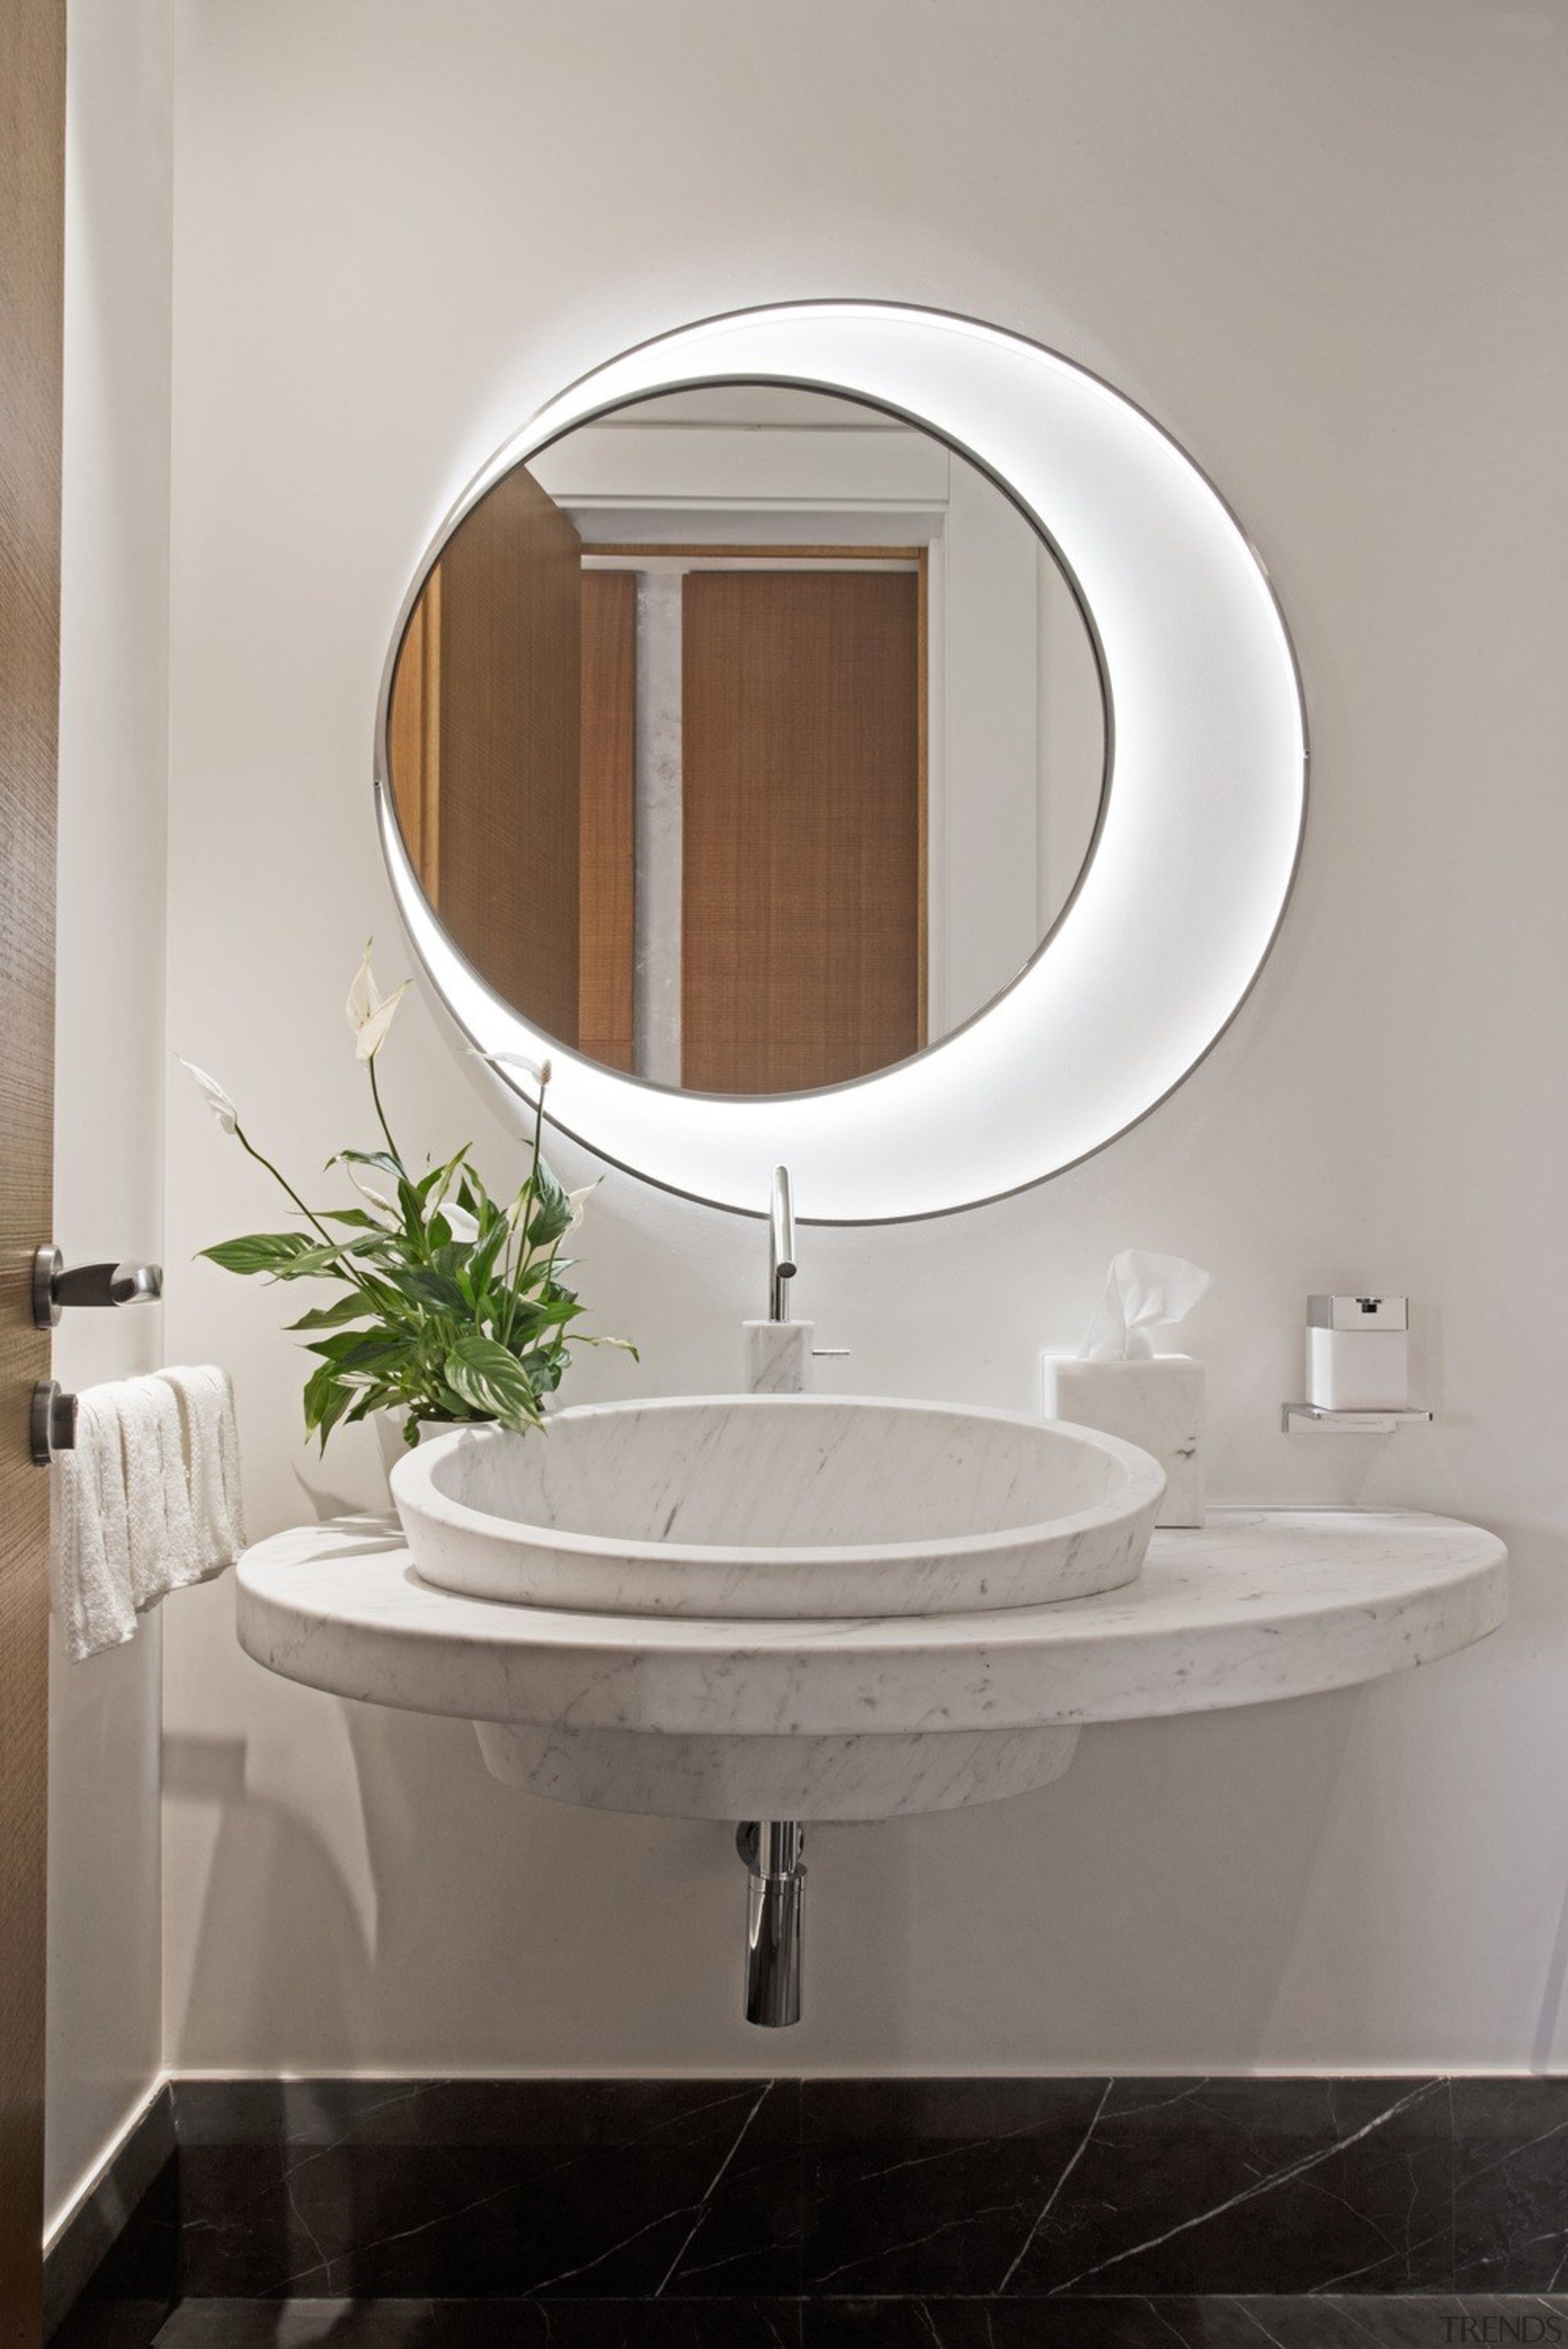 Functional for family - architecture   bathroom   architecture, bathroom, bathroom accessory, bathroom cabinet, bathroom sink, ceramic, interior design, marble, material property, mirror, oval, plumbing fixture, property, room, sink, tap, tile, gray